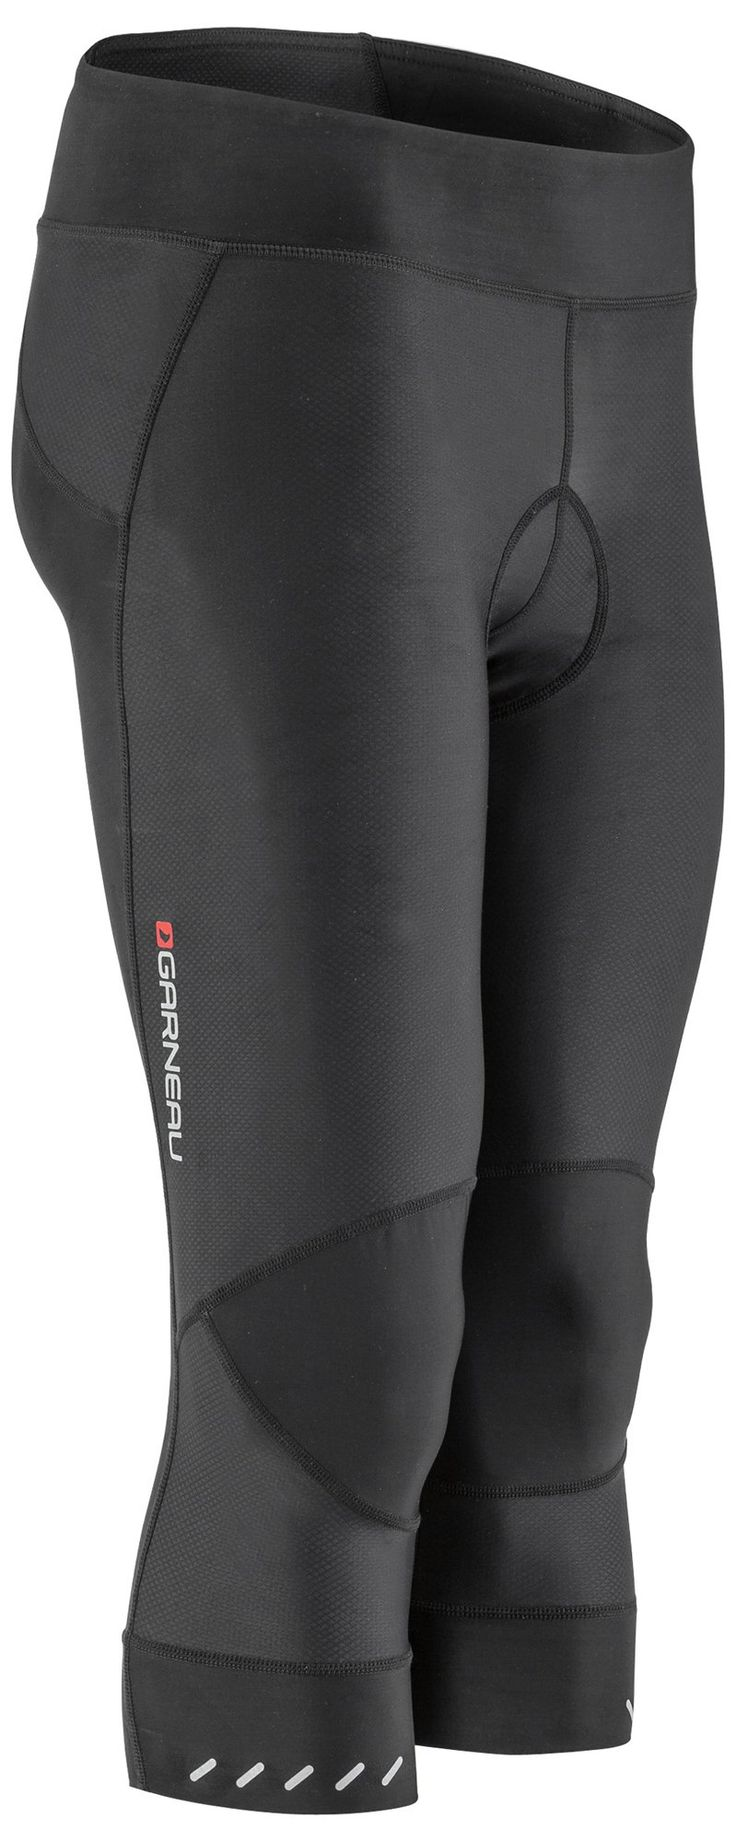 Louis Garneau - Women's Optimum Cycling Knickers with Padded Chamois, Black, XXL. The AirSport chamois reduces chafing and pinching, delivering a smooth transition from one position to another. It also benefits from an antibacterial treatment that fights the effects of retained moisture and bacteria growth. The ergonomic fit supports your body while in motion, to help you perform better every time you pull them on. Optimal fabric choice gives you the perfect amount of stretch, with a…